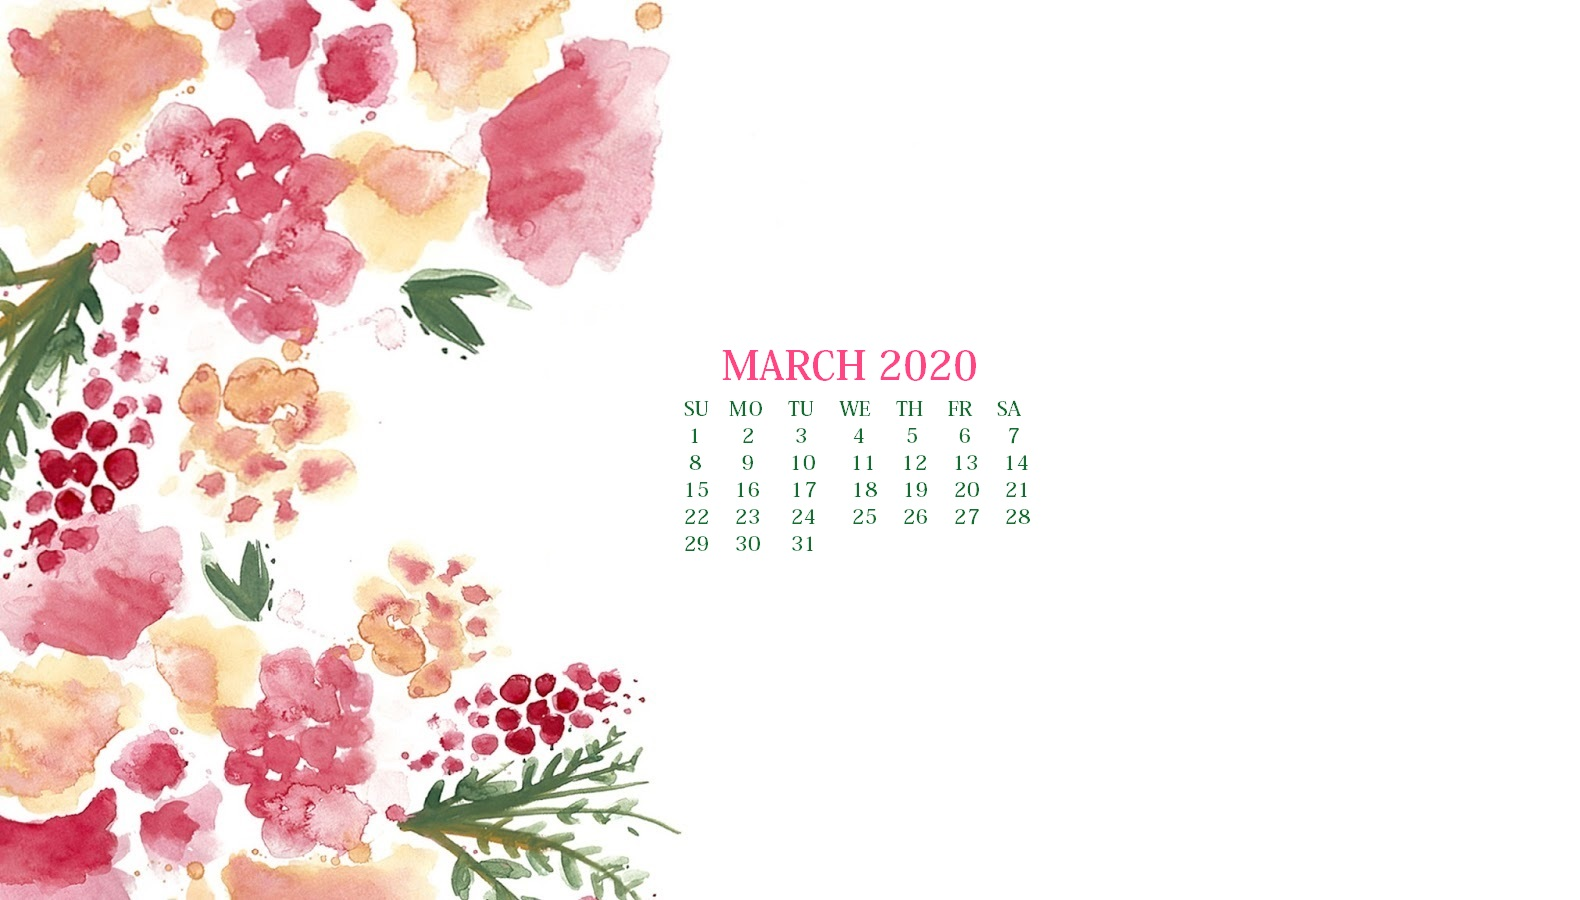 March 2020 Calendar Wallpaper   Desktop and iPhone 1580x900